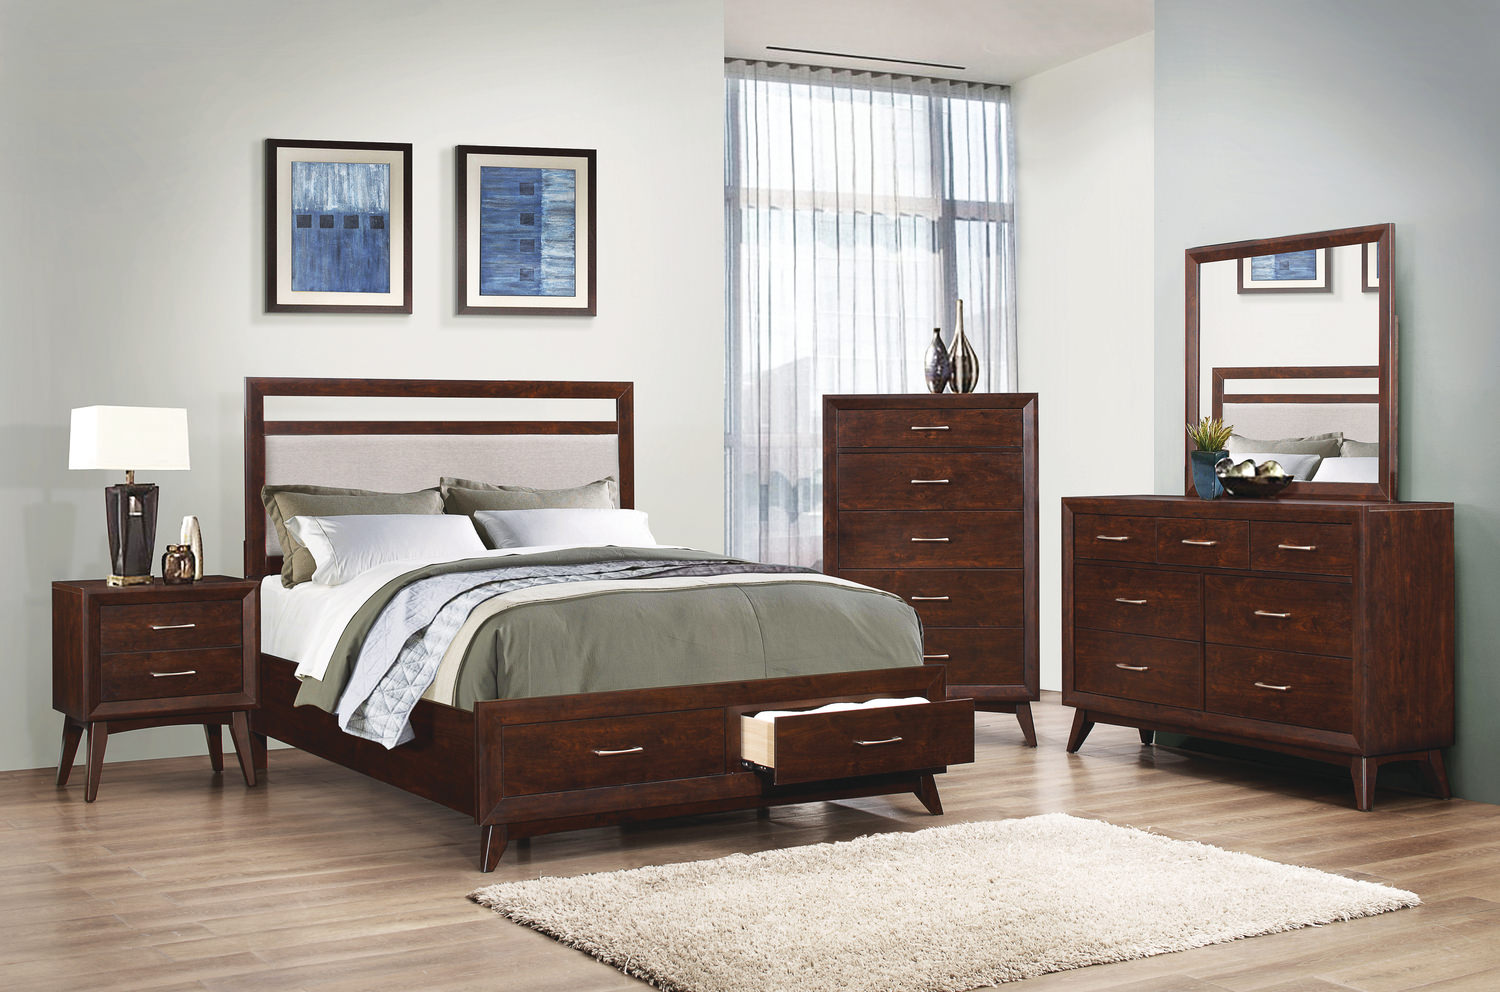 carson bedroom suite | dock 86